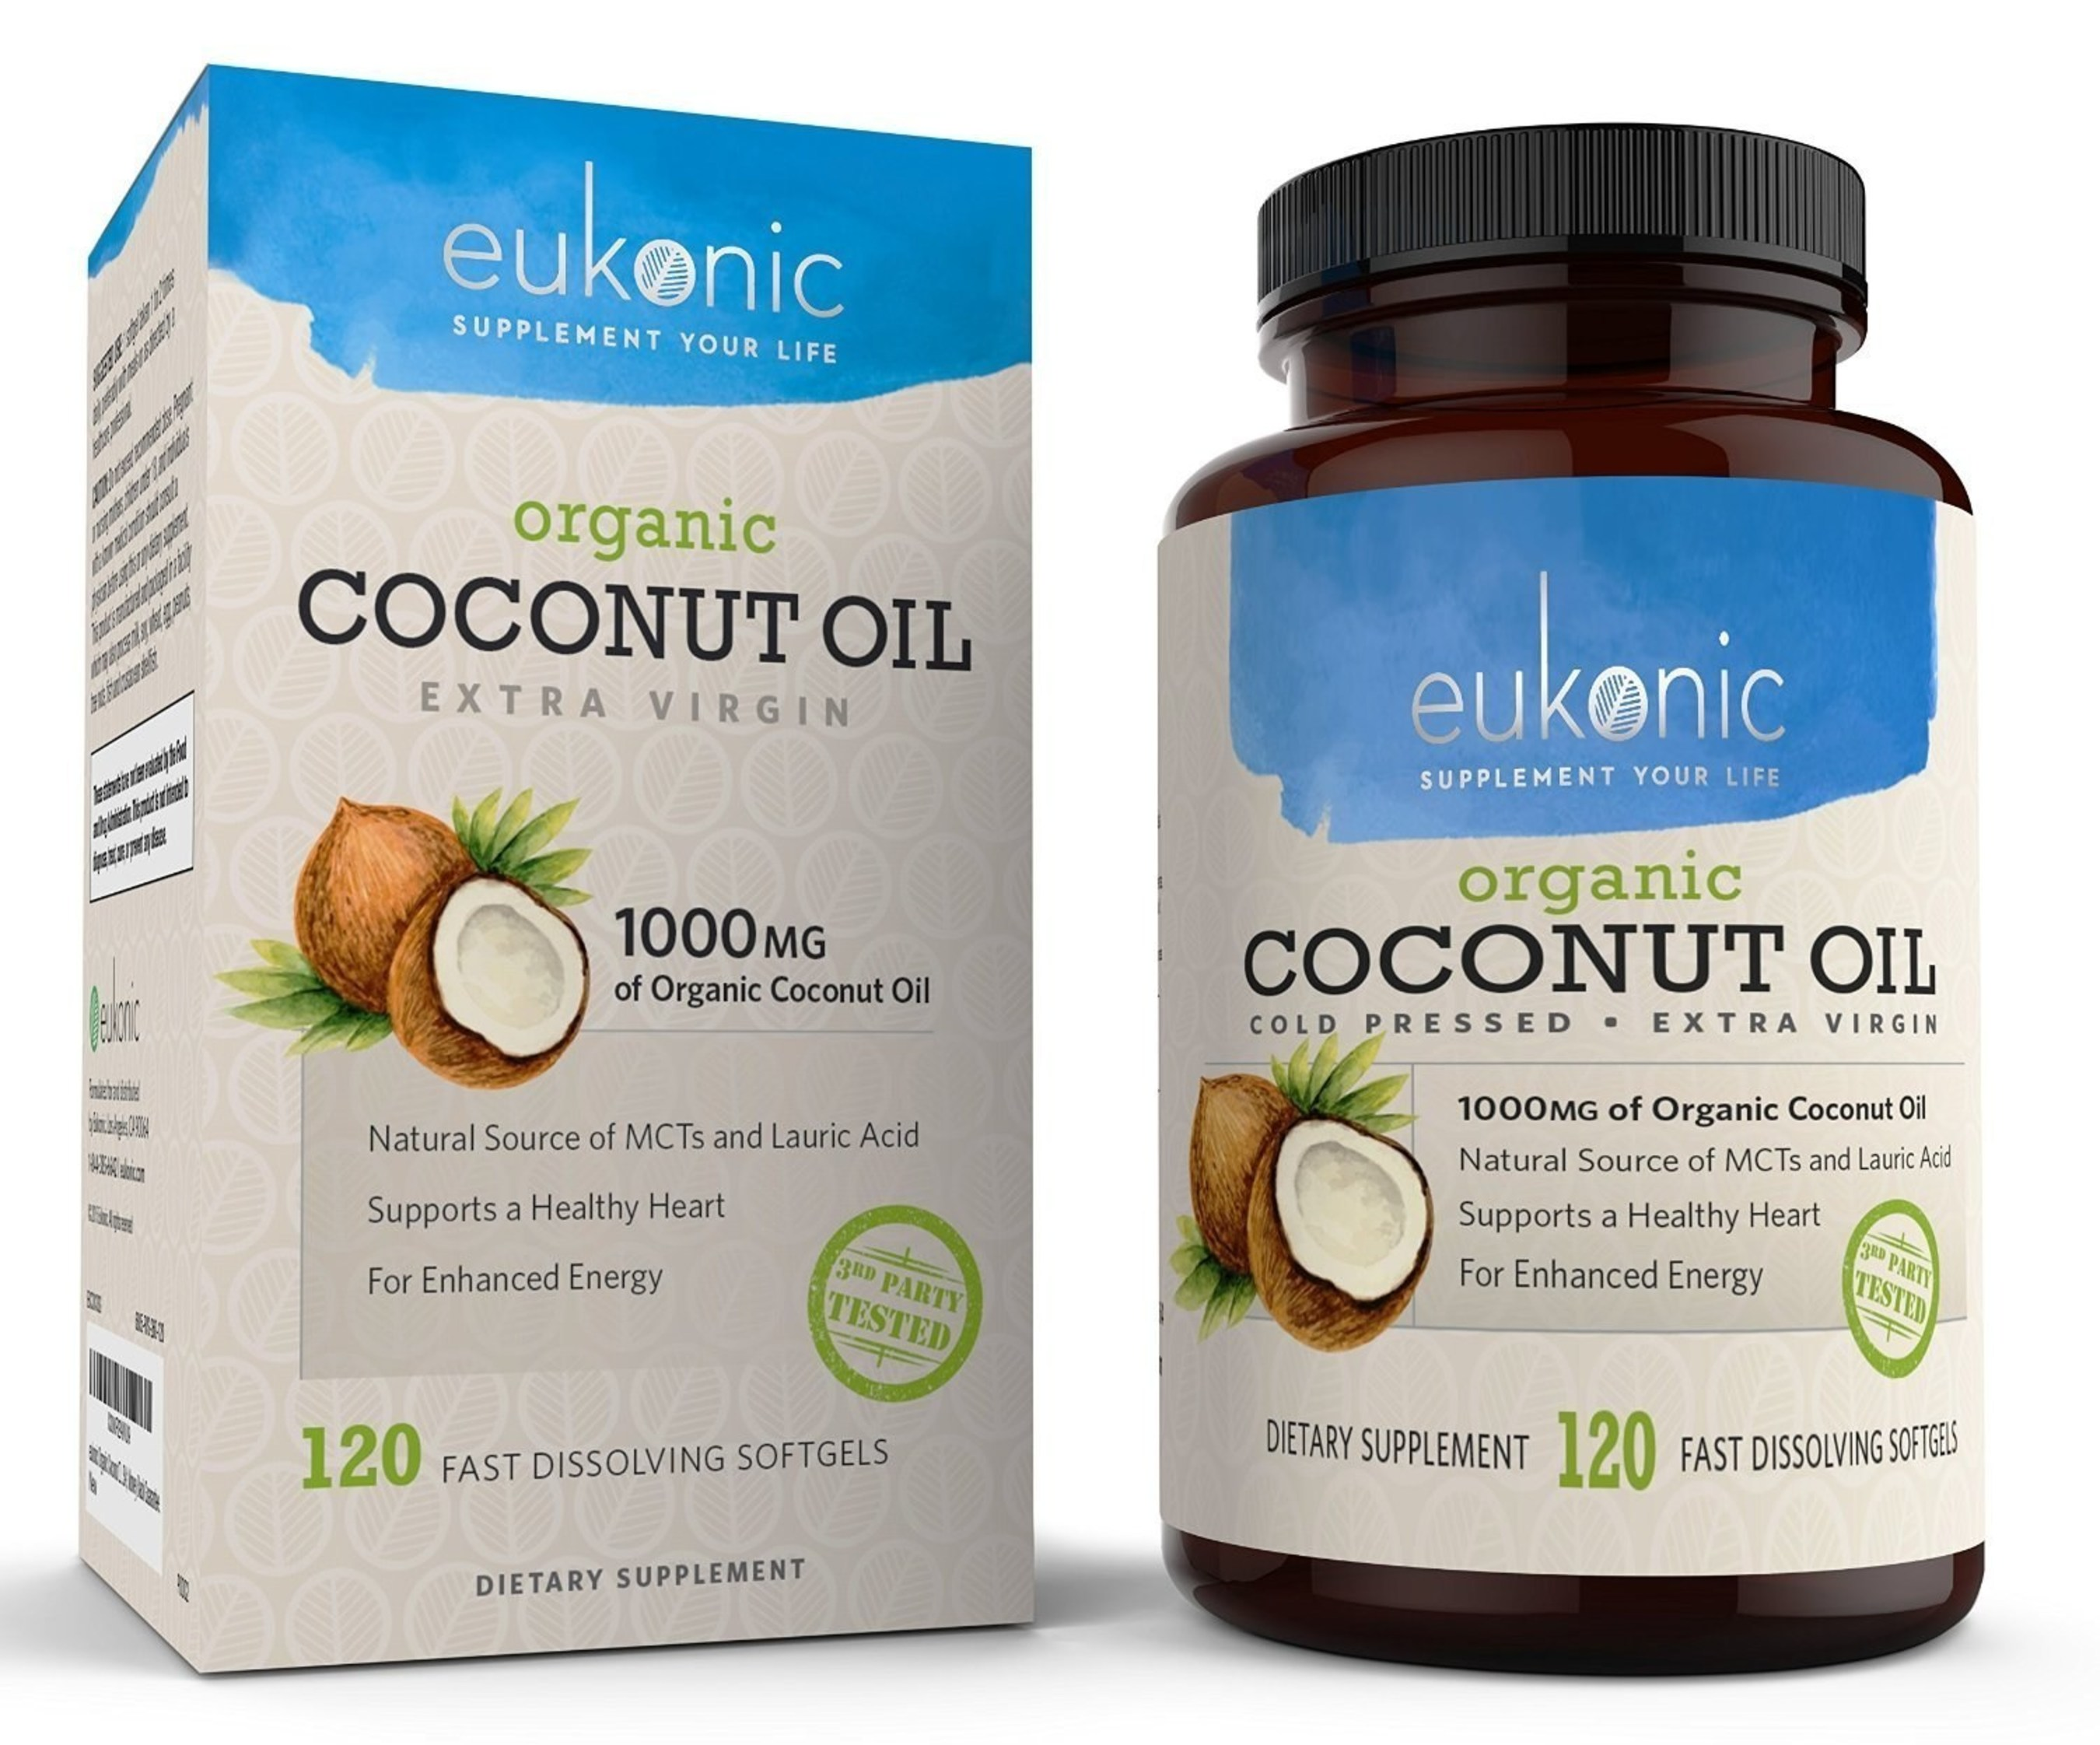 Eukonic Supplements Announces New Line of Coconut Oil Capsules